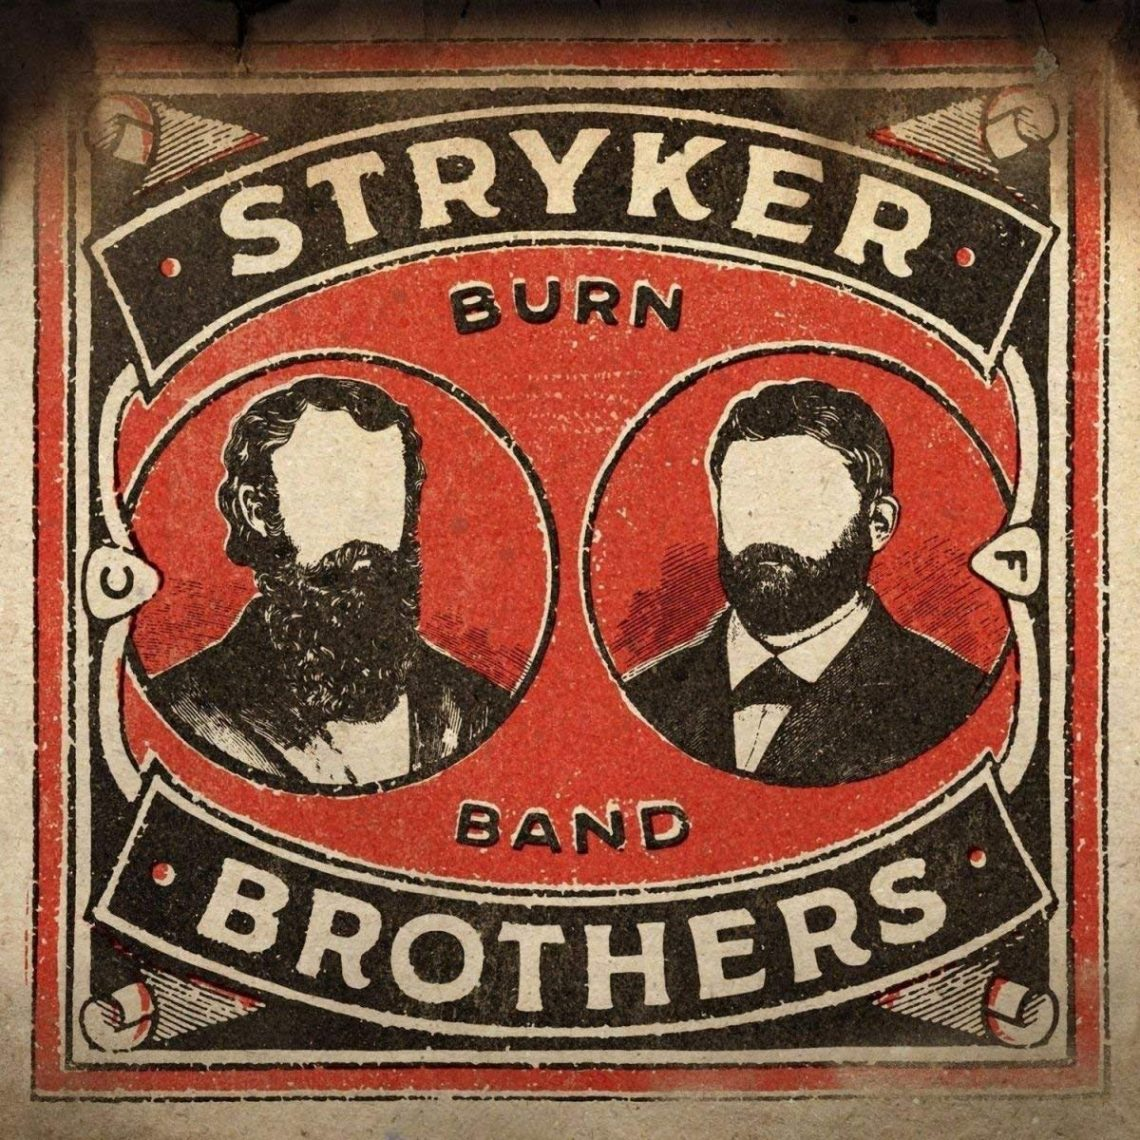 The Mysterious Stryker Brothers Revealed to Be Robert Earl Keen & Randy Rogers